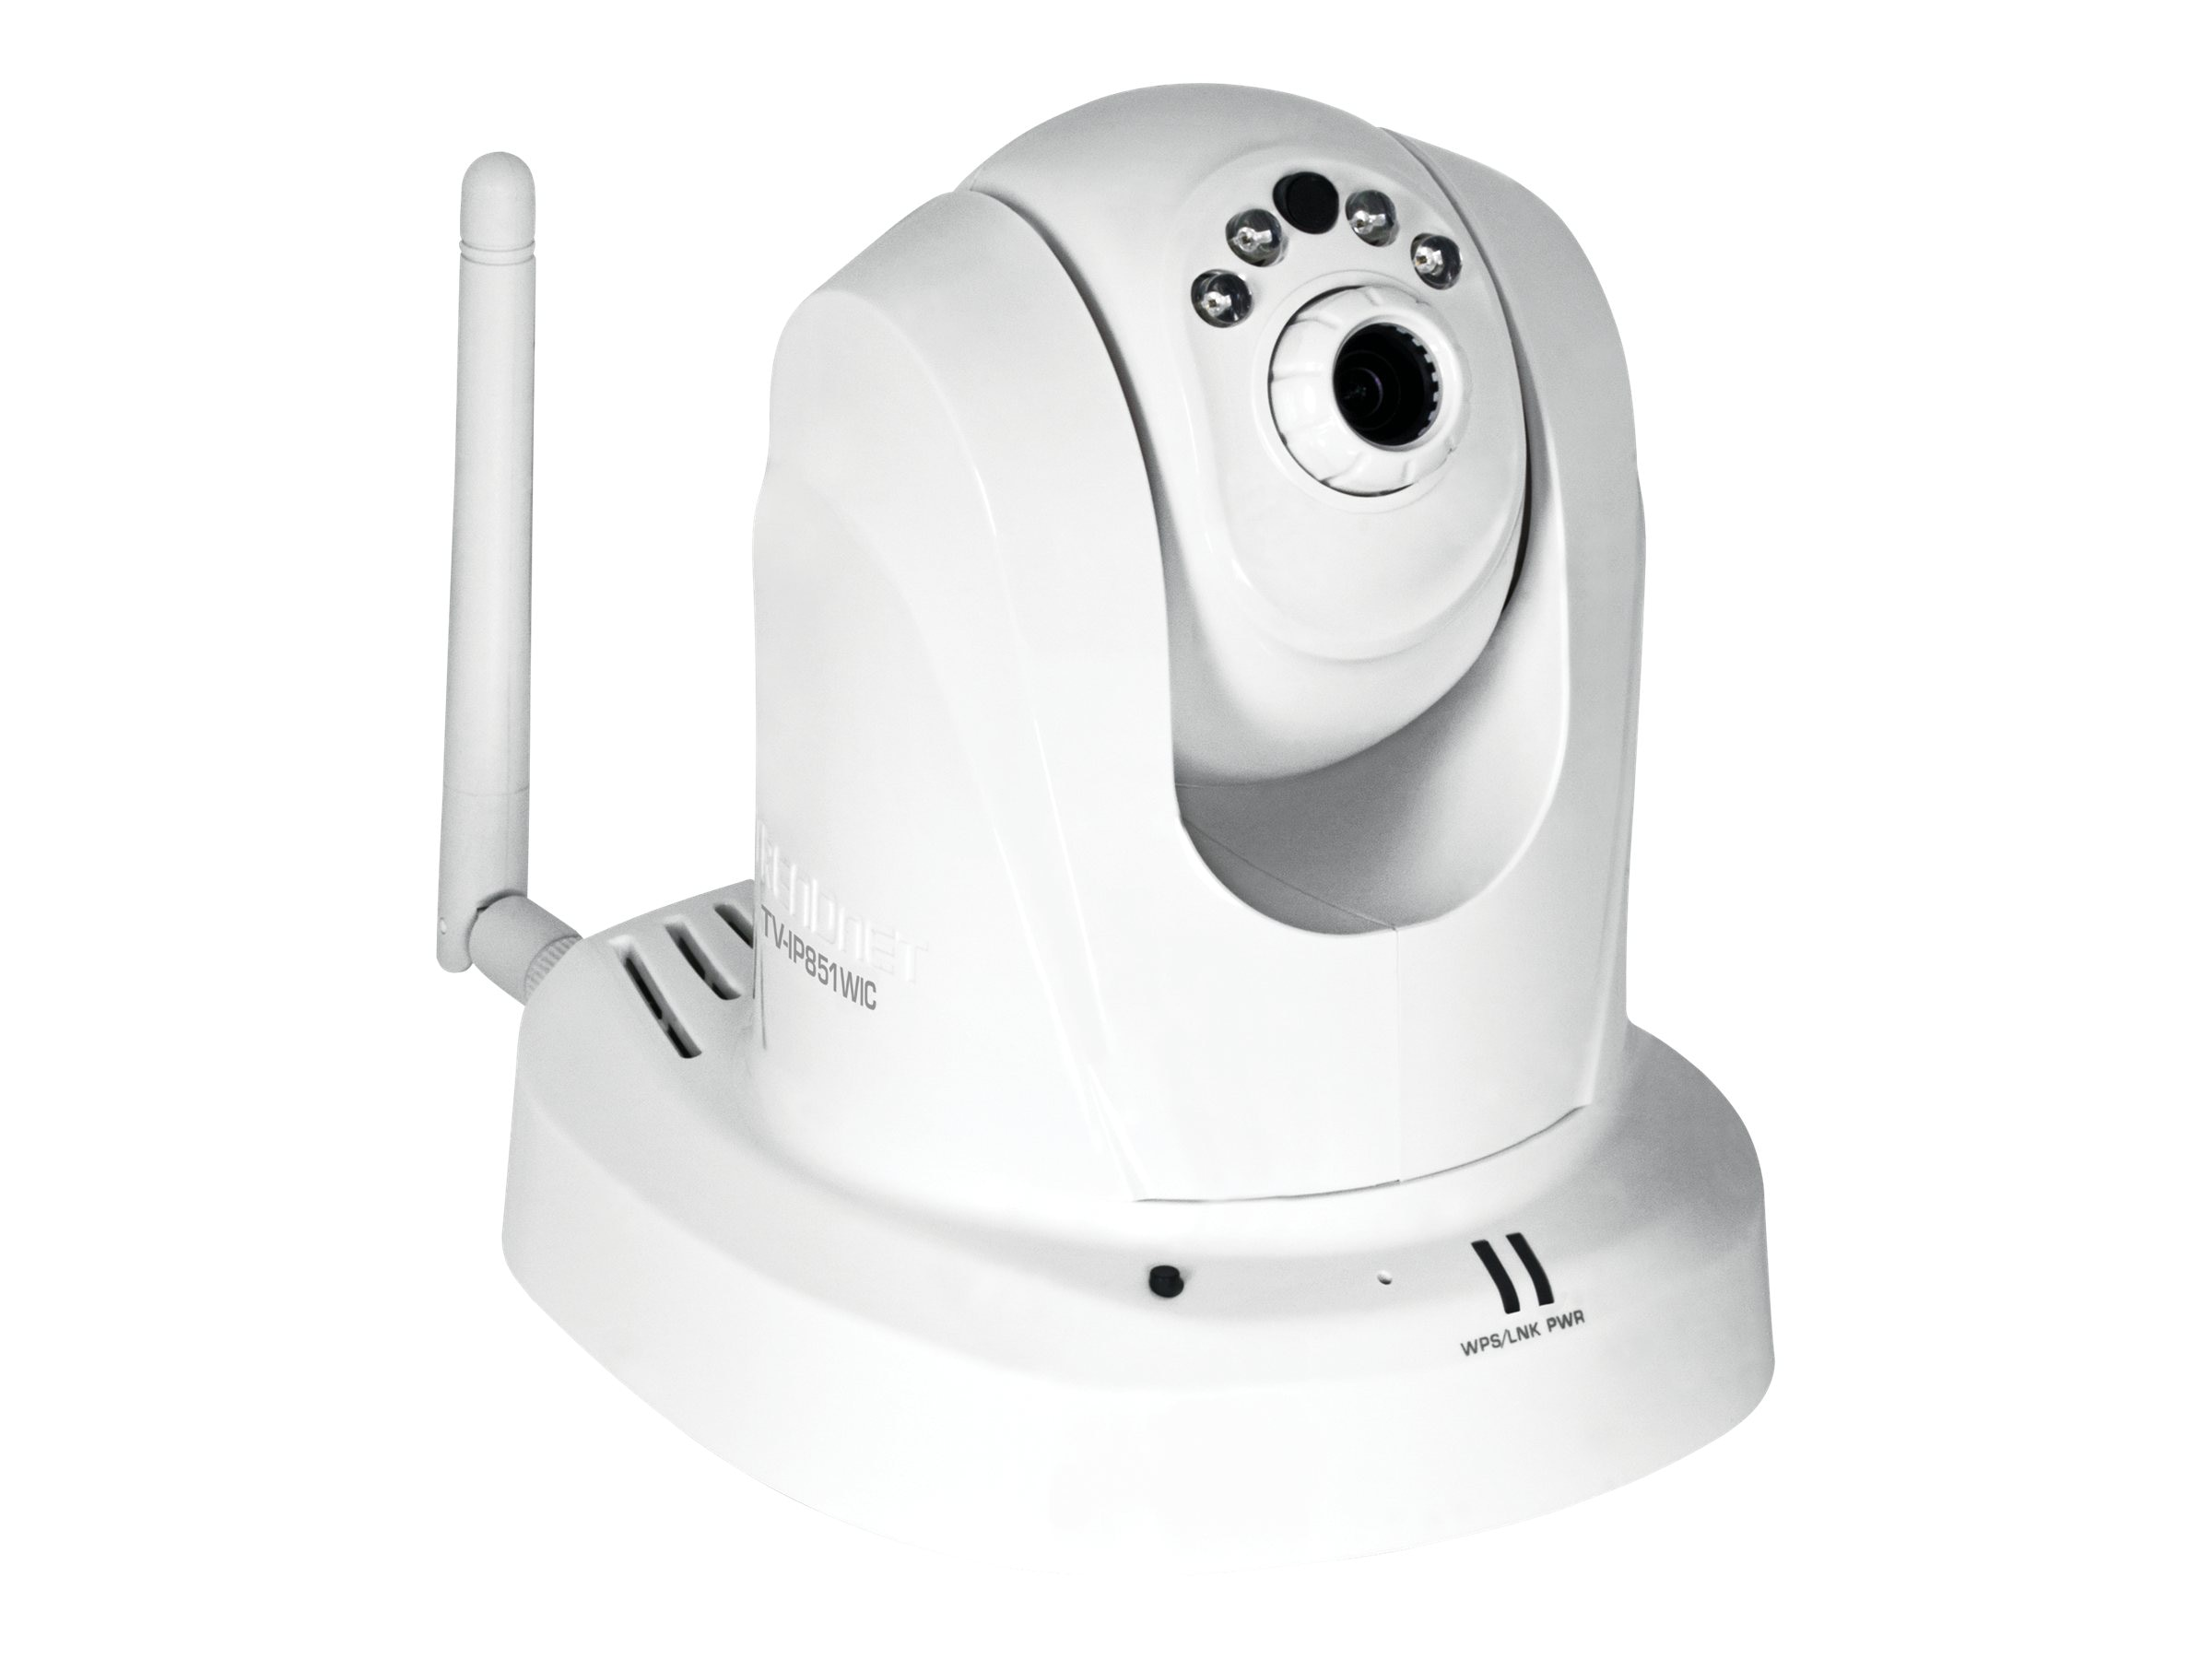 TRENDnet Wireless N PTZ Cloud Camera, TV-IP851WIC, 15124129, Cameras - Security